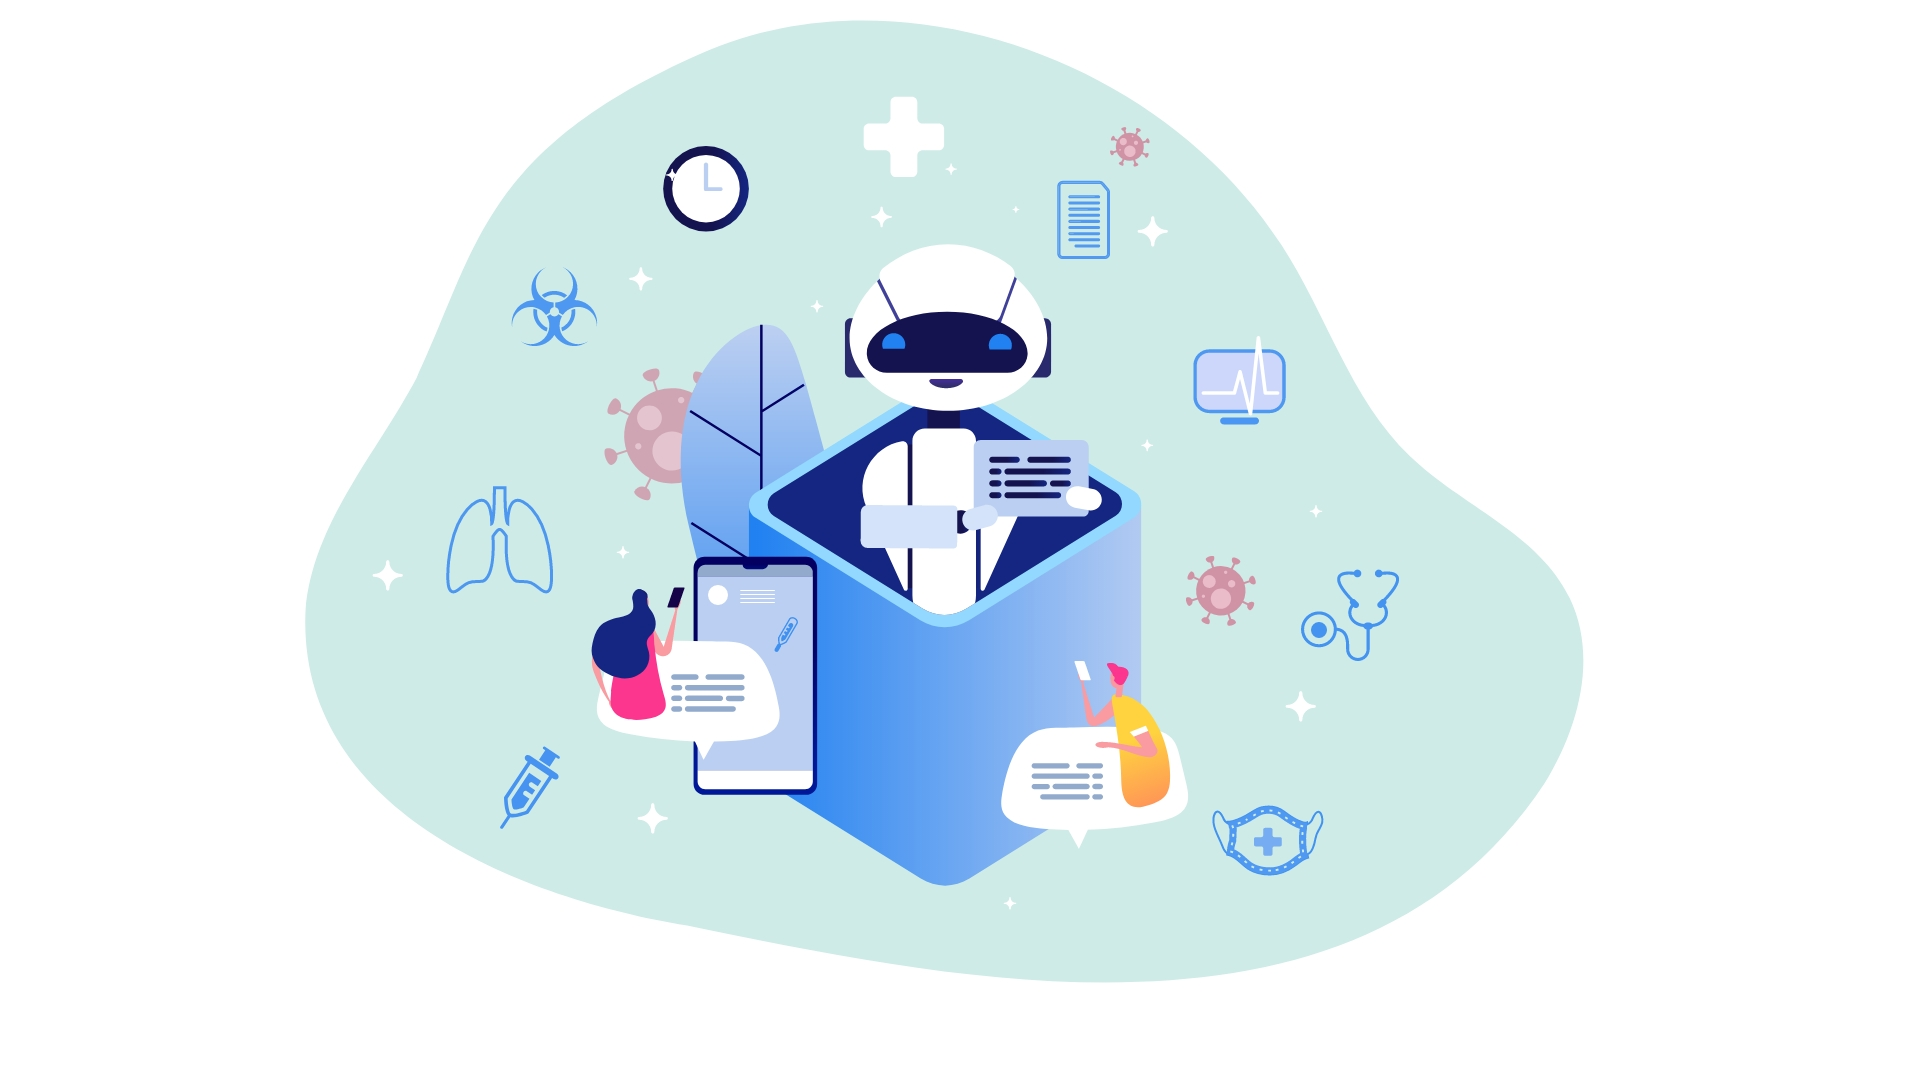 Adoption of Artificial Intelligence in healthcare